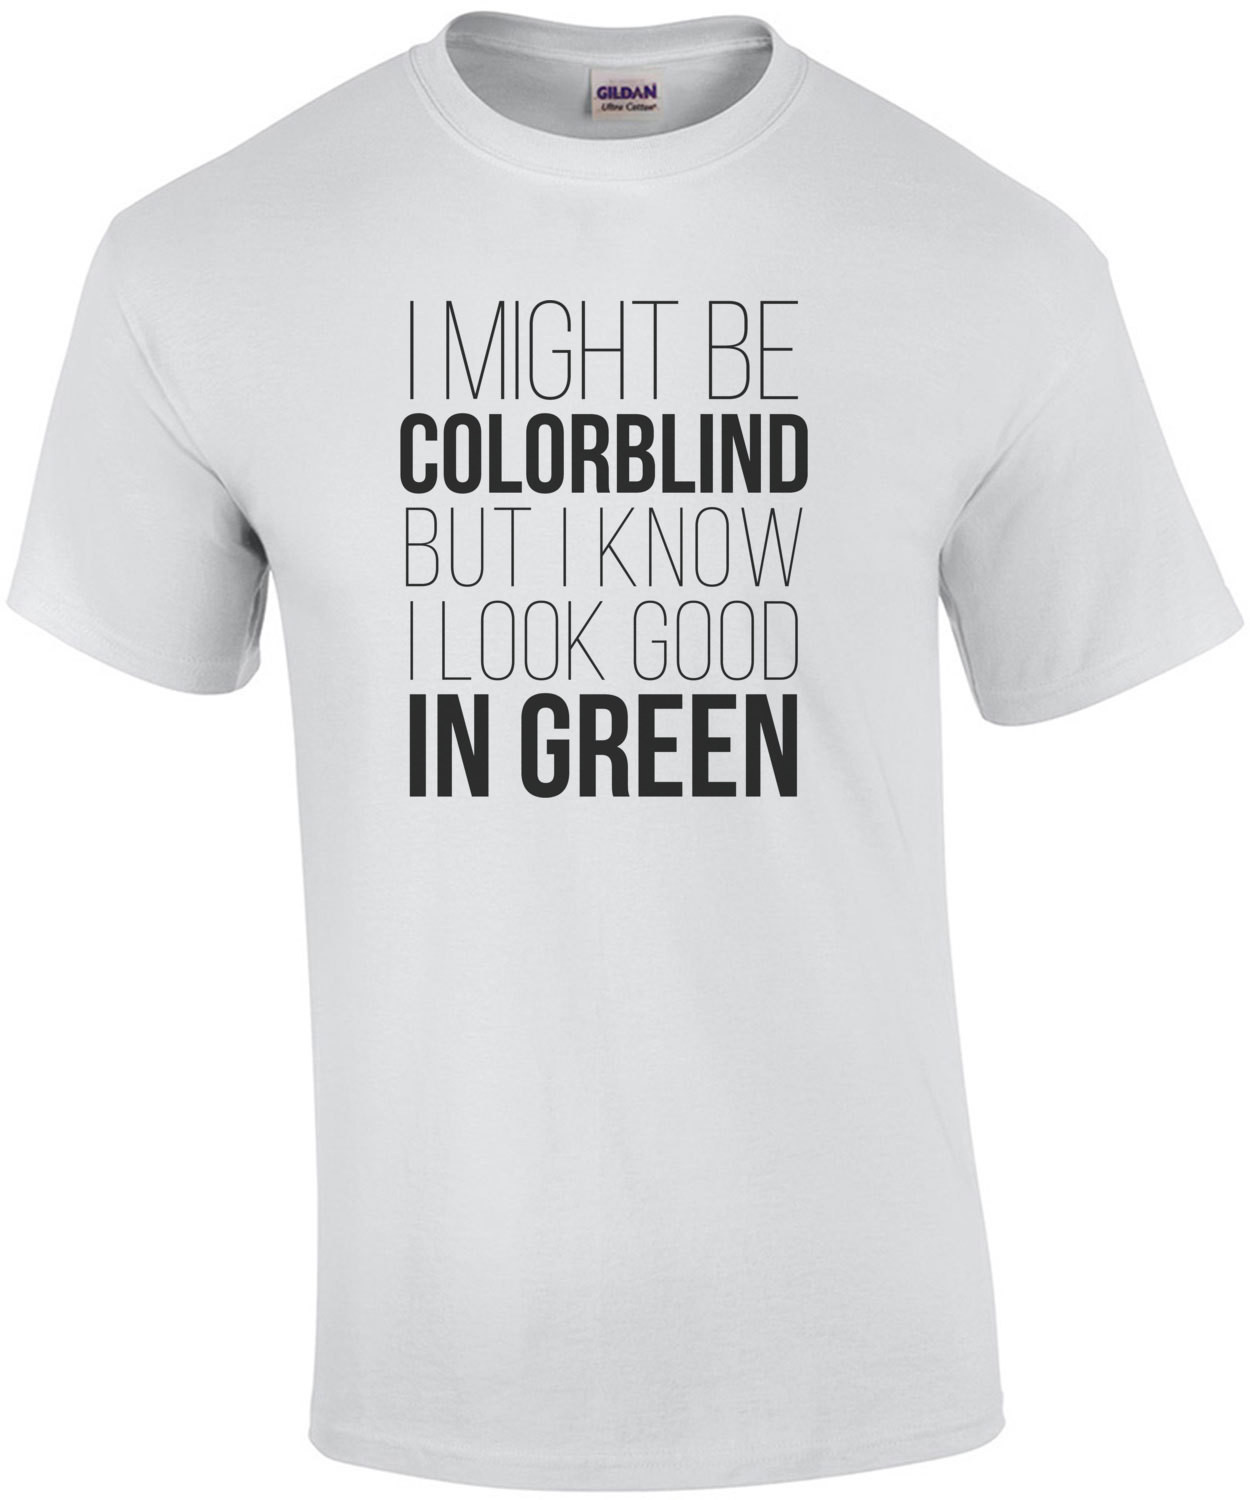 I might be colorblind but I know I look good in green - funny t-shirt